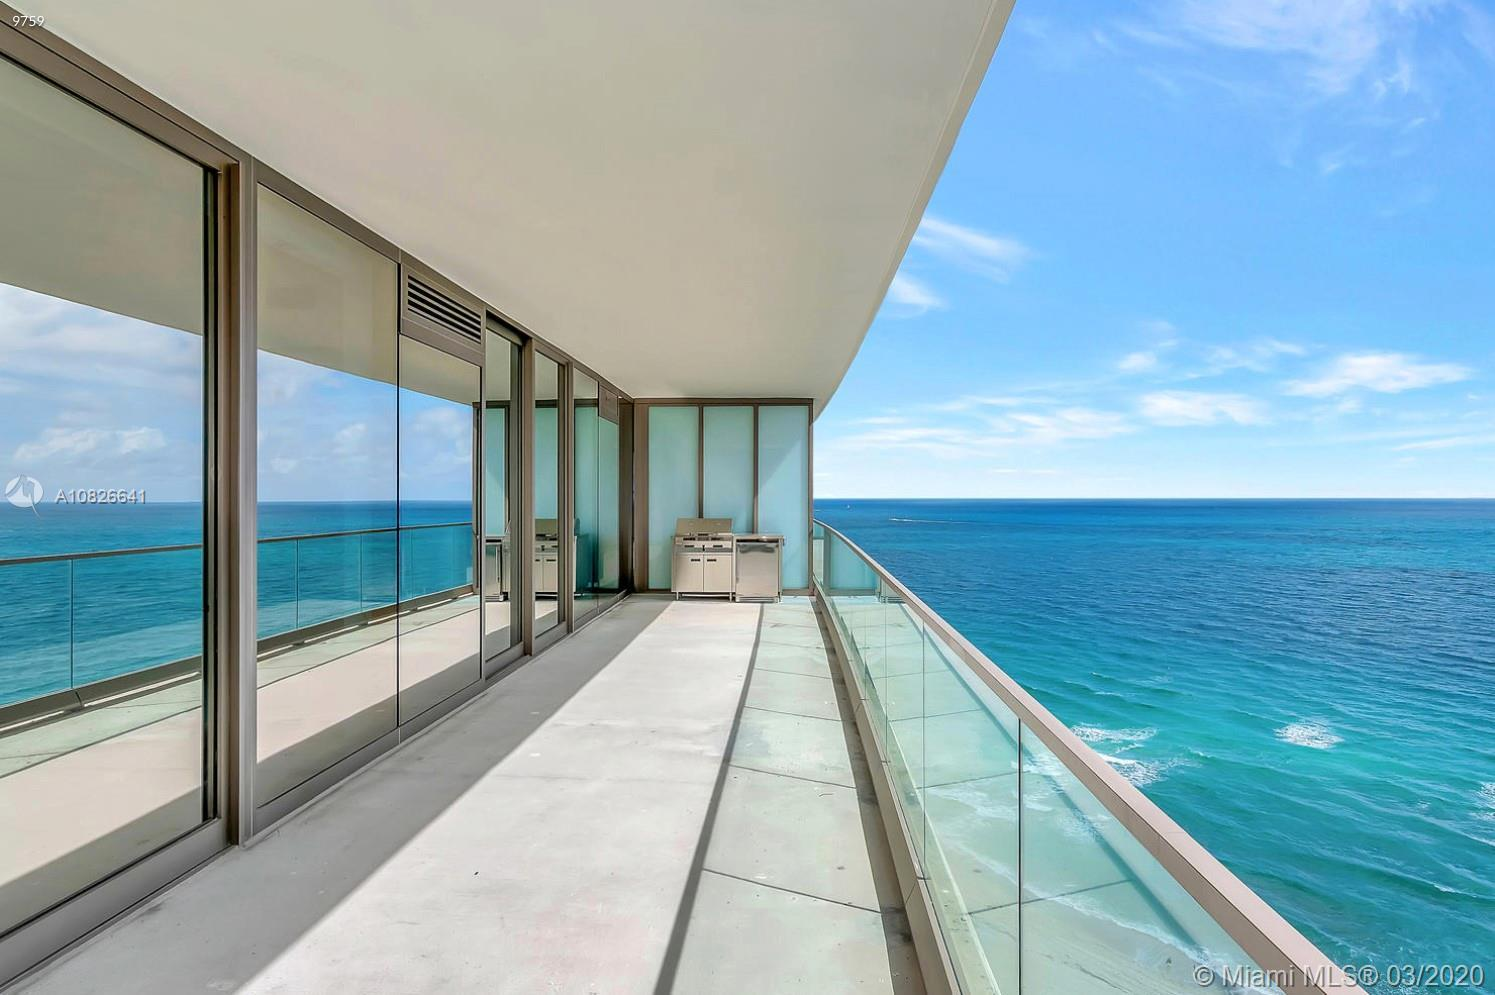 Brand New Armani Casa Miami! The first and only Armani building in the US. Call the listing agent to